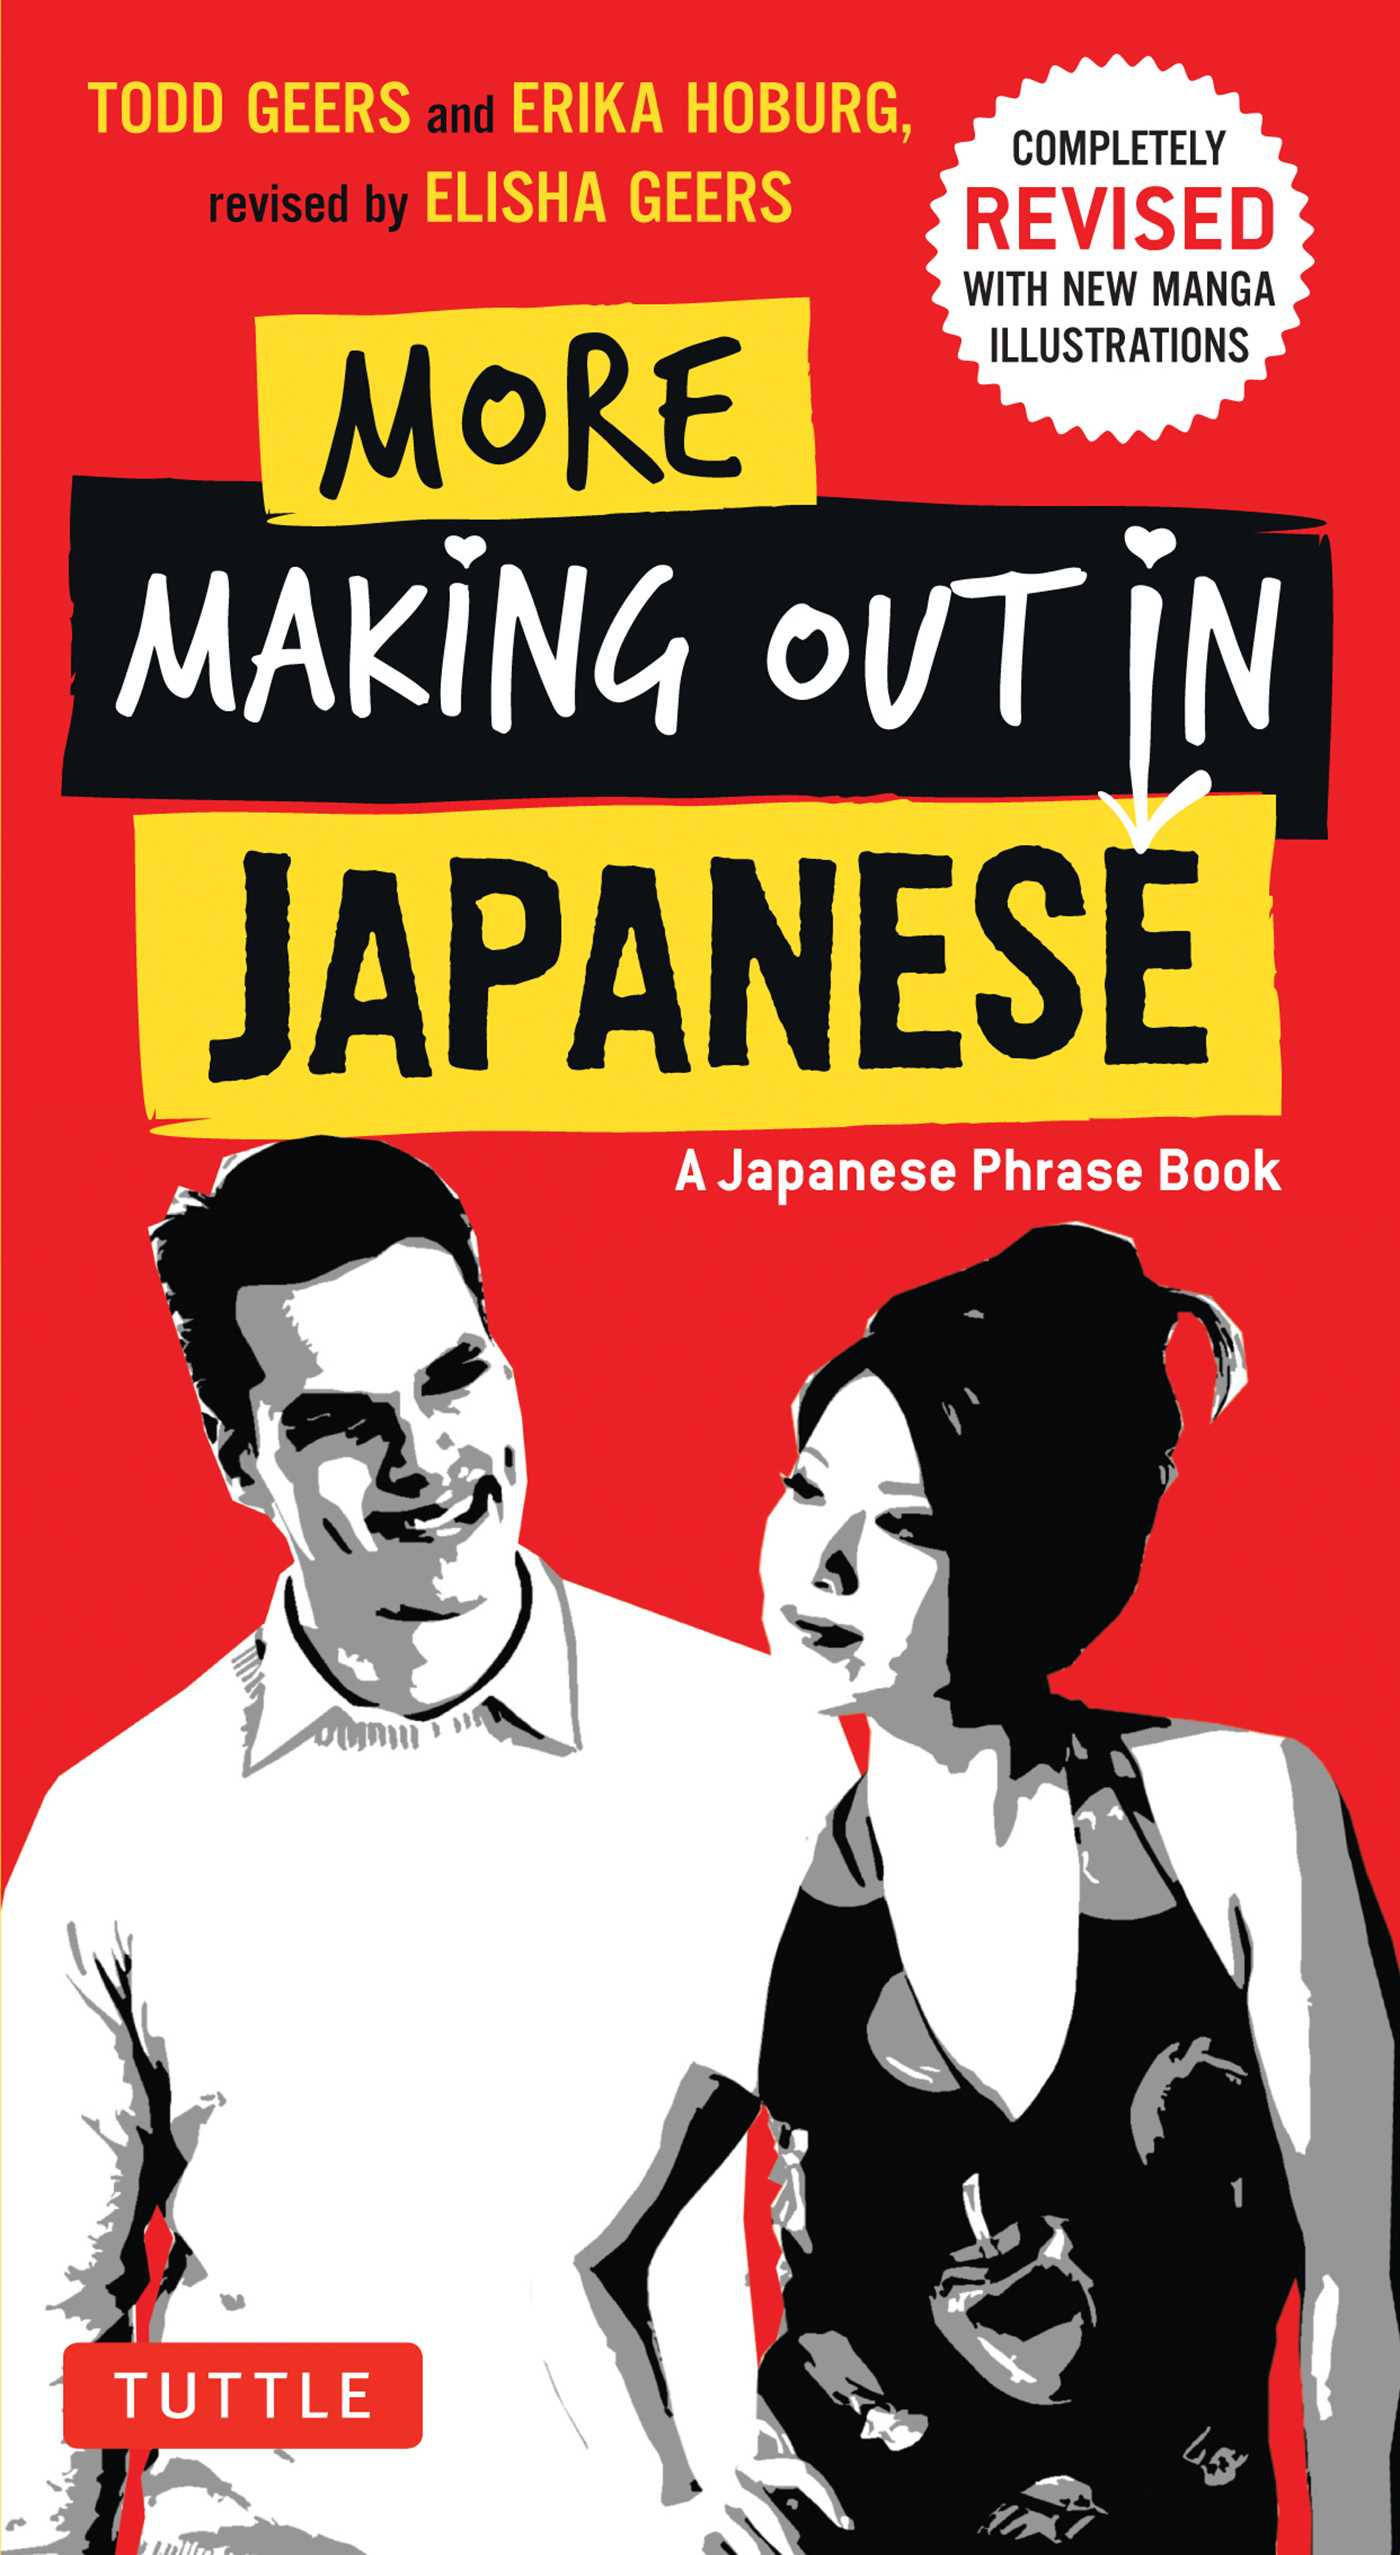 More-making-out-in-japanese-9784805312254_hr